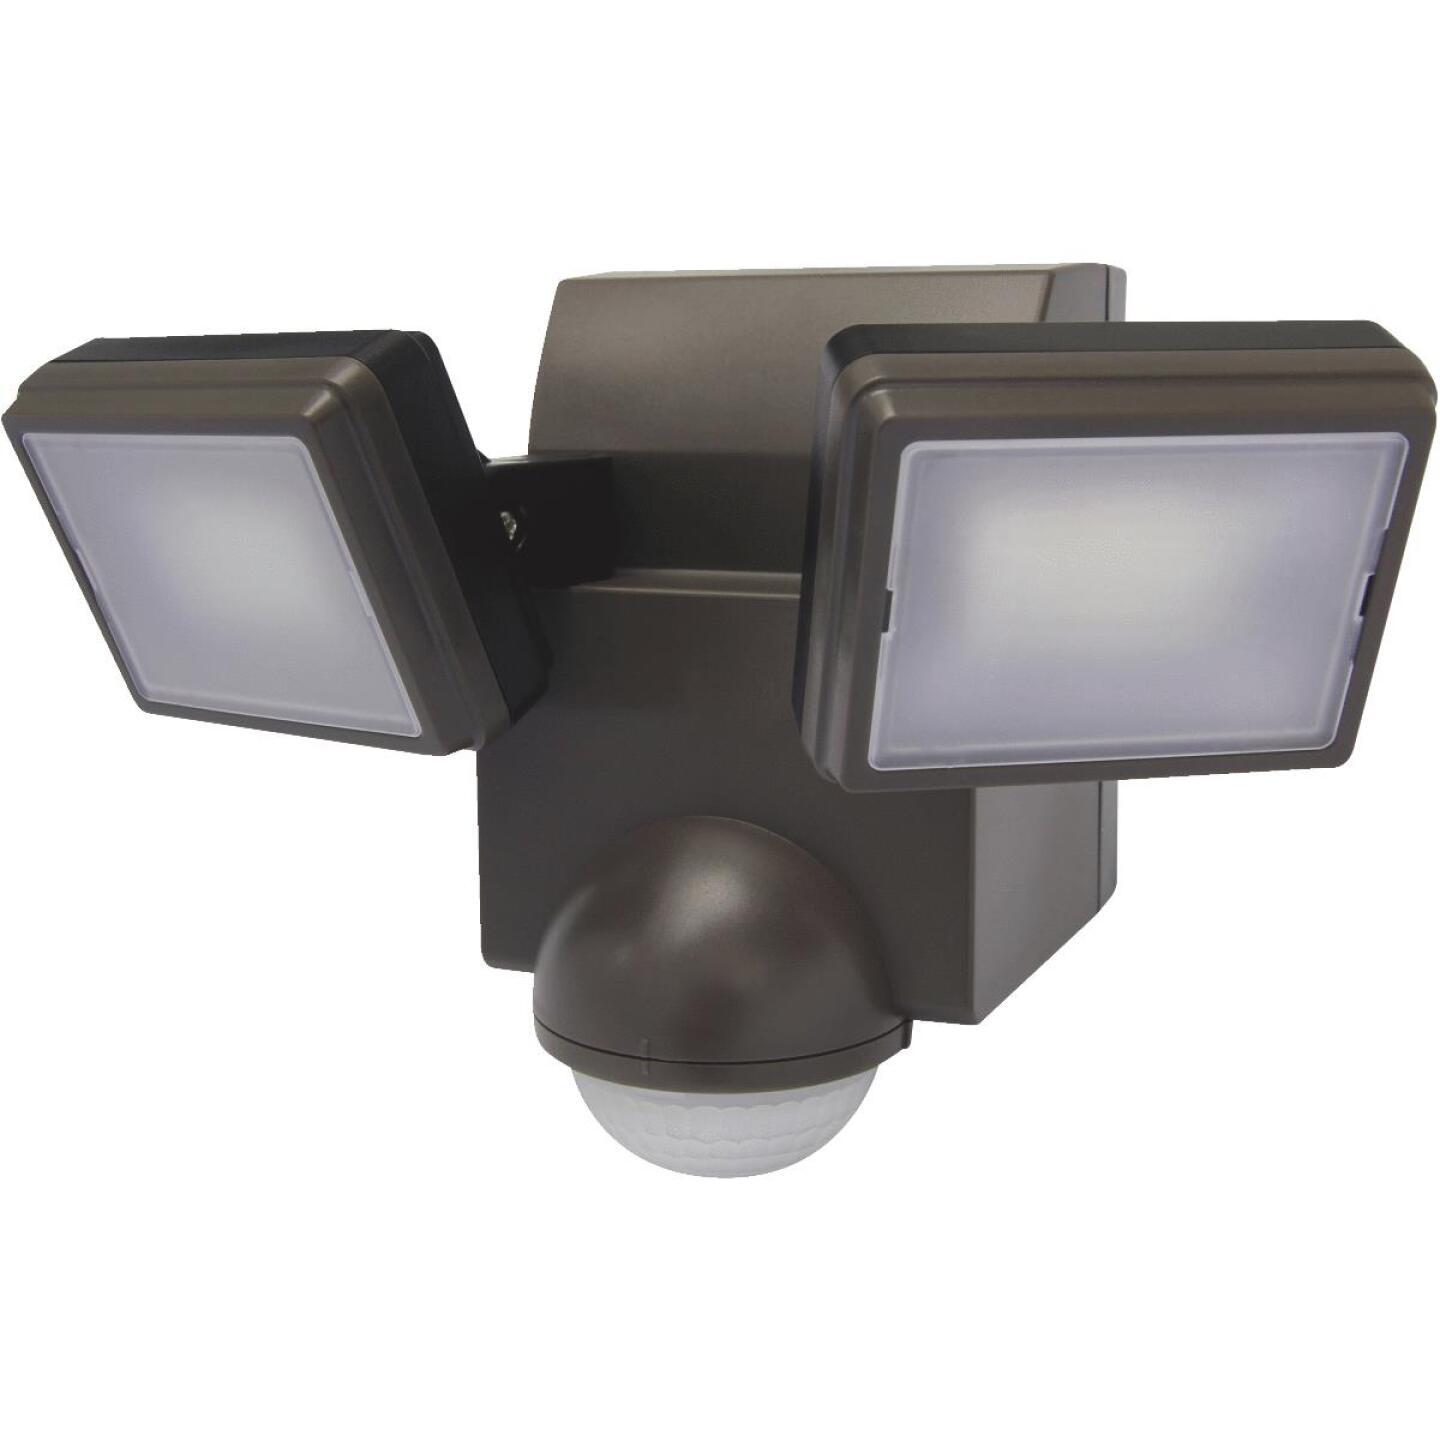 IQ America Bronze 700 Lm. LED Battery Operated 2-Head Security Light Fixture Image 1